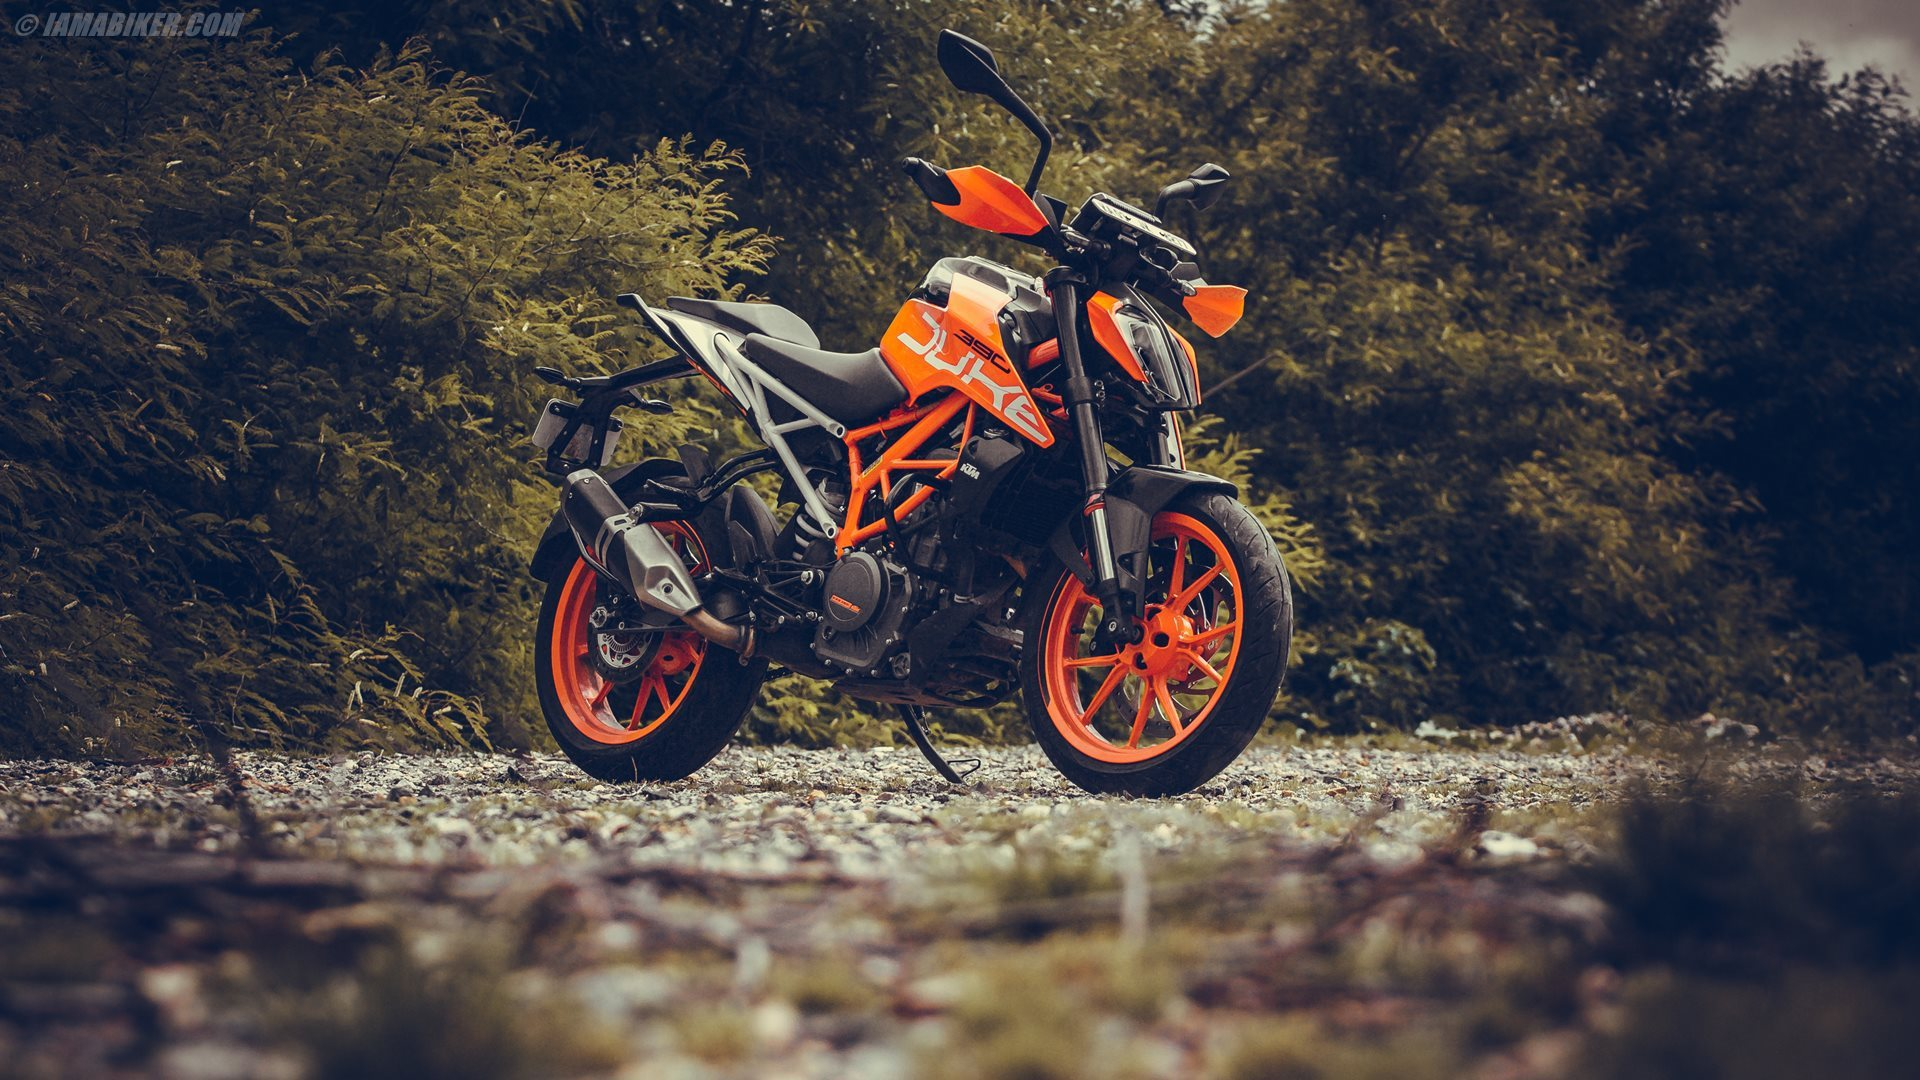 2017 Ktm Duke 390 Hd Wallpapers Iamabiker Ktm Duke 390 2018 1920x1080 Download Hd Wallpaper Wallpapertip